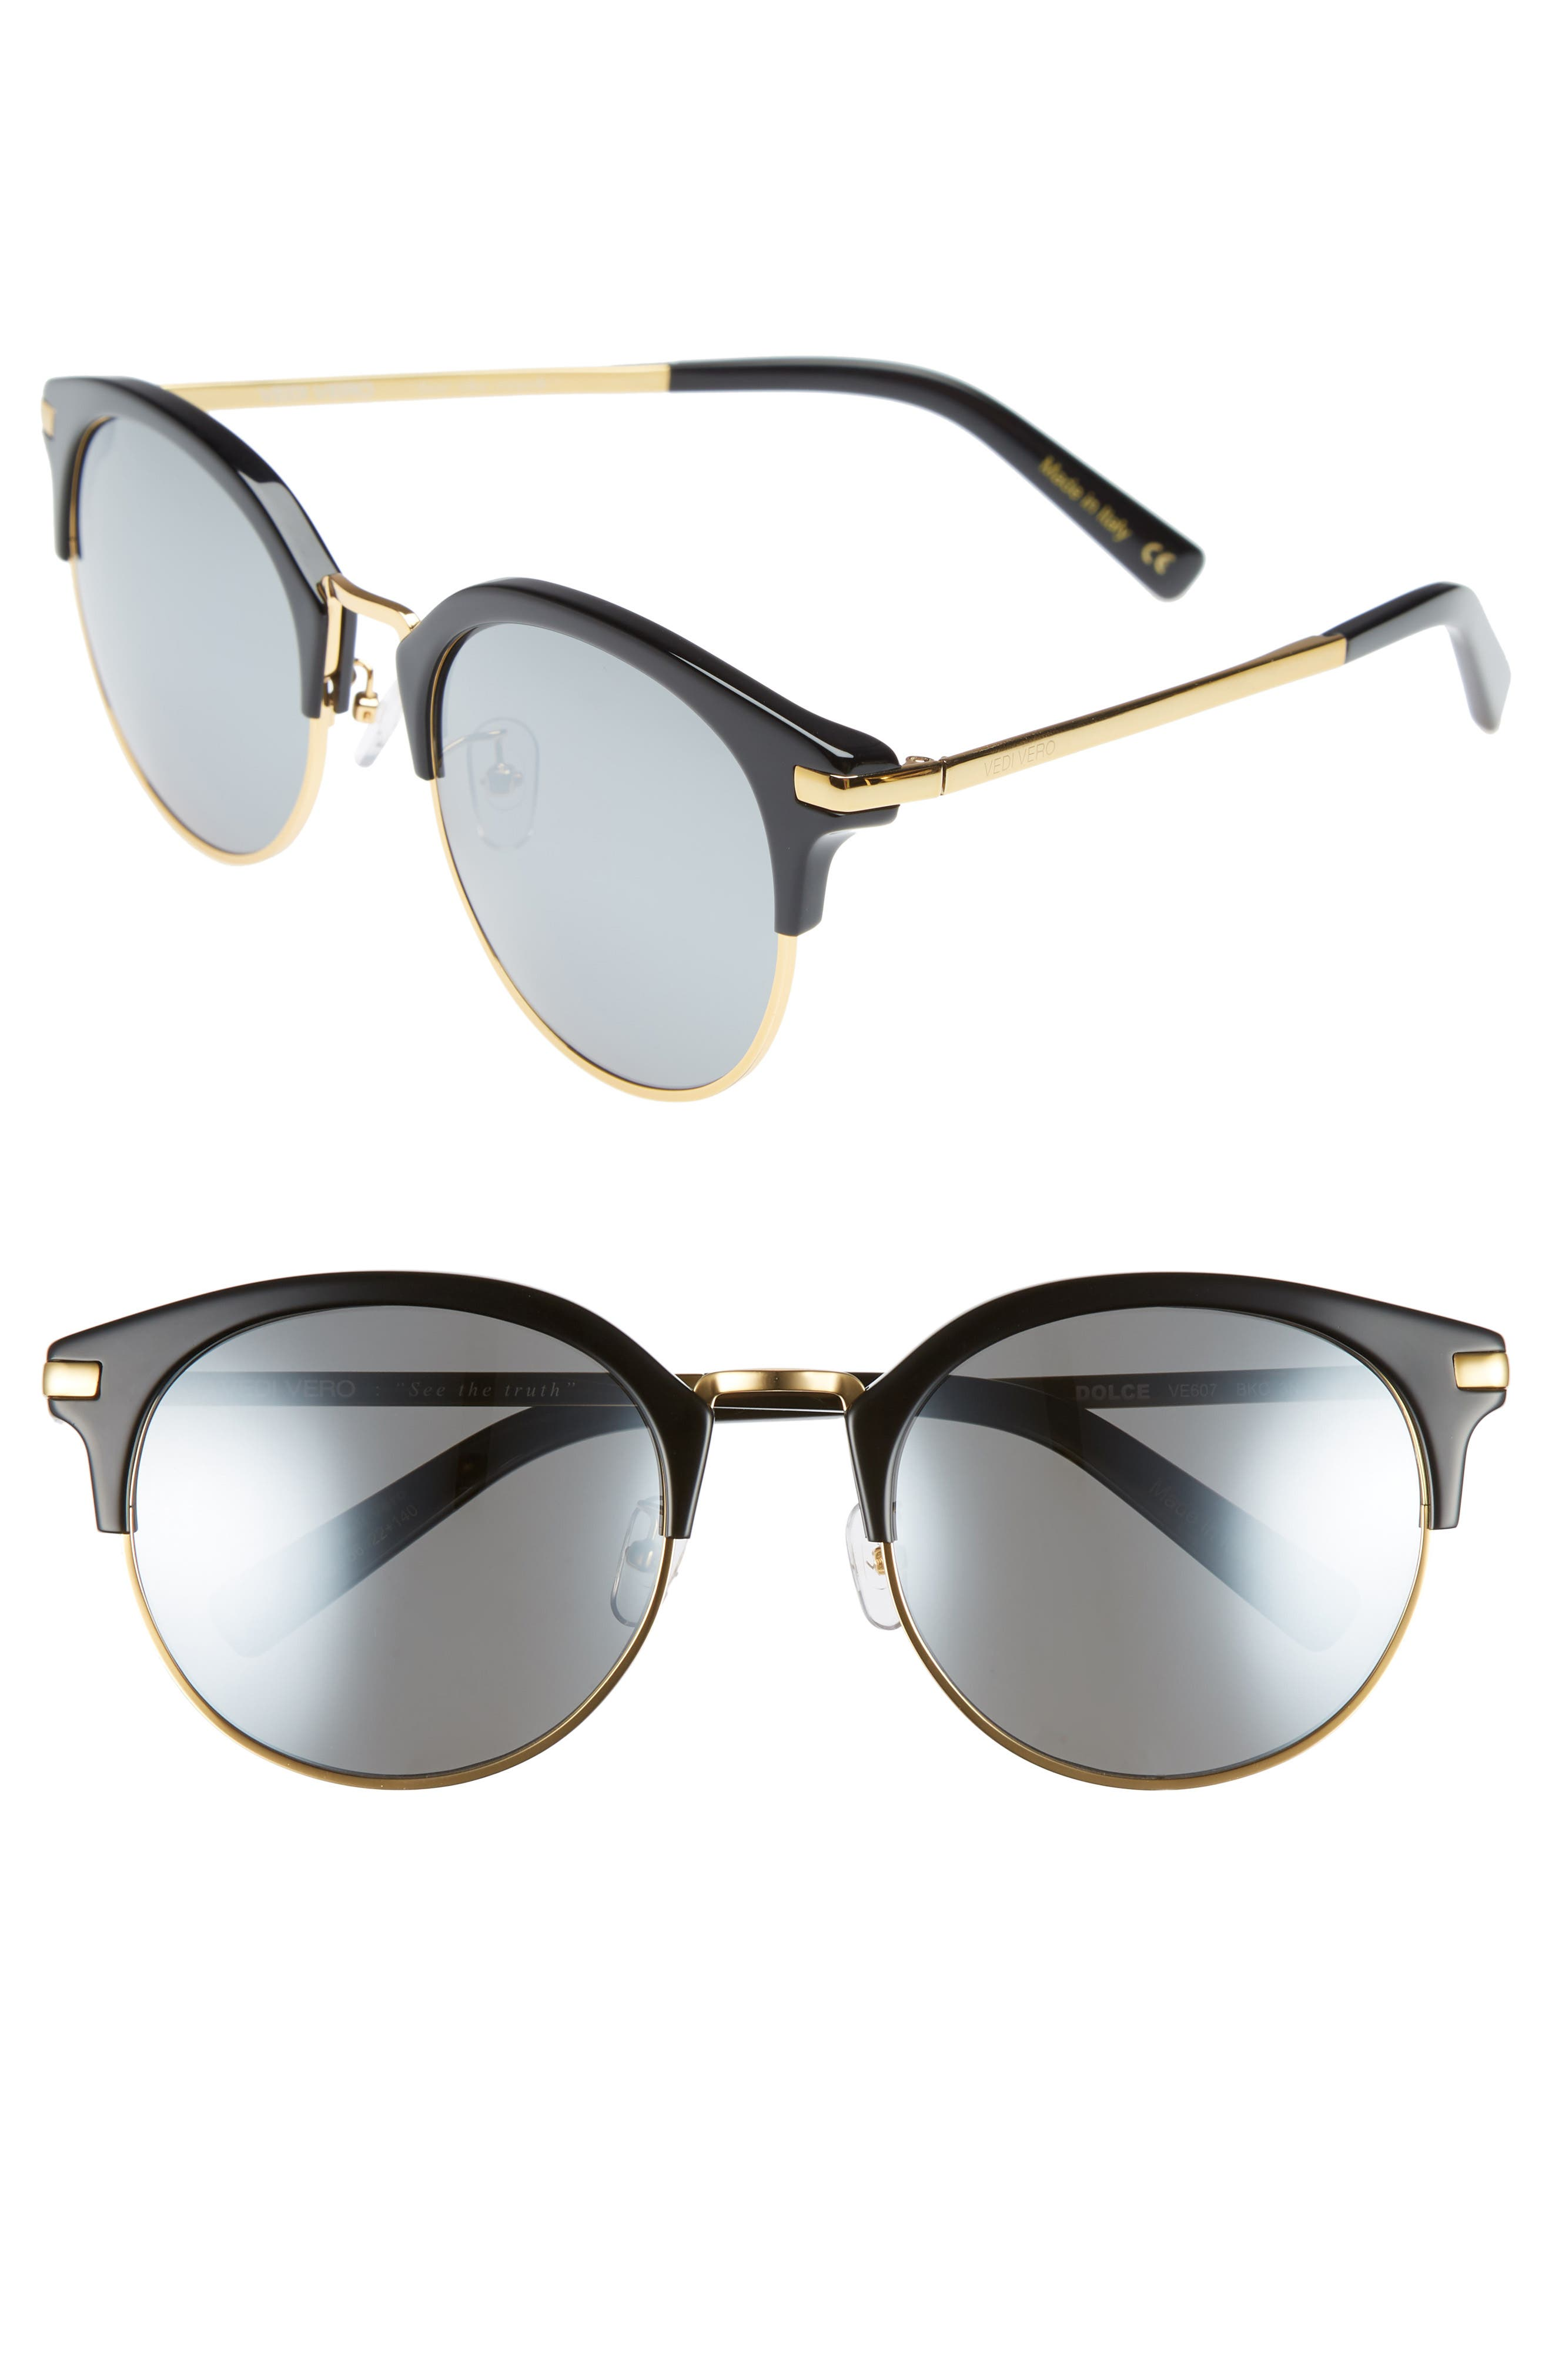 56mm Round Sunglasses,                         Main,                         color, Gold And Black/Blue Mirror